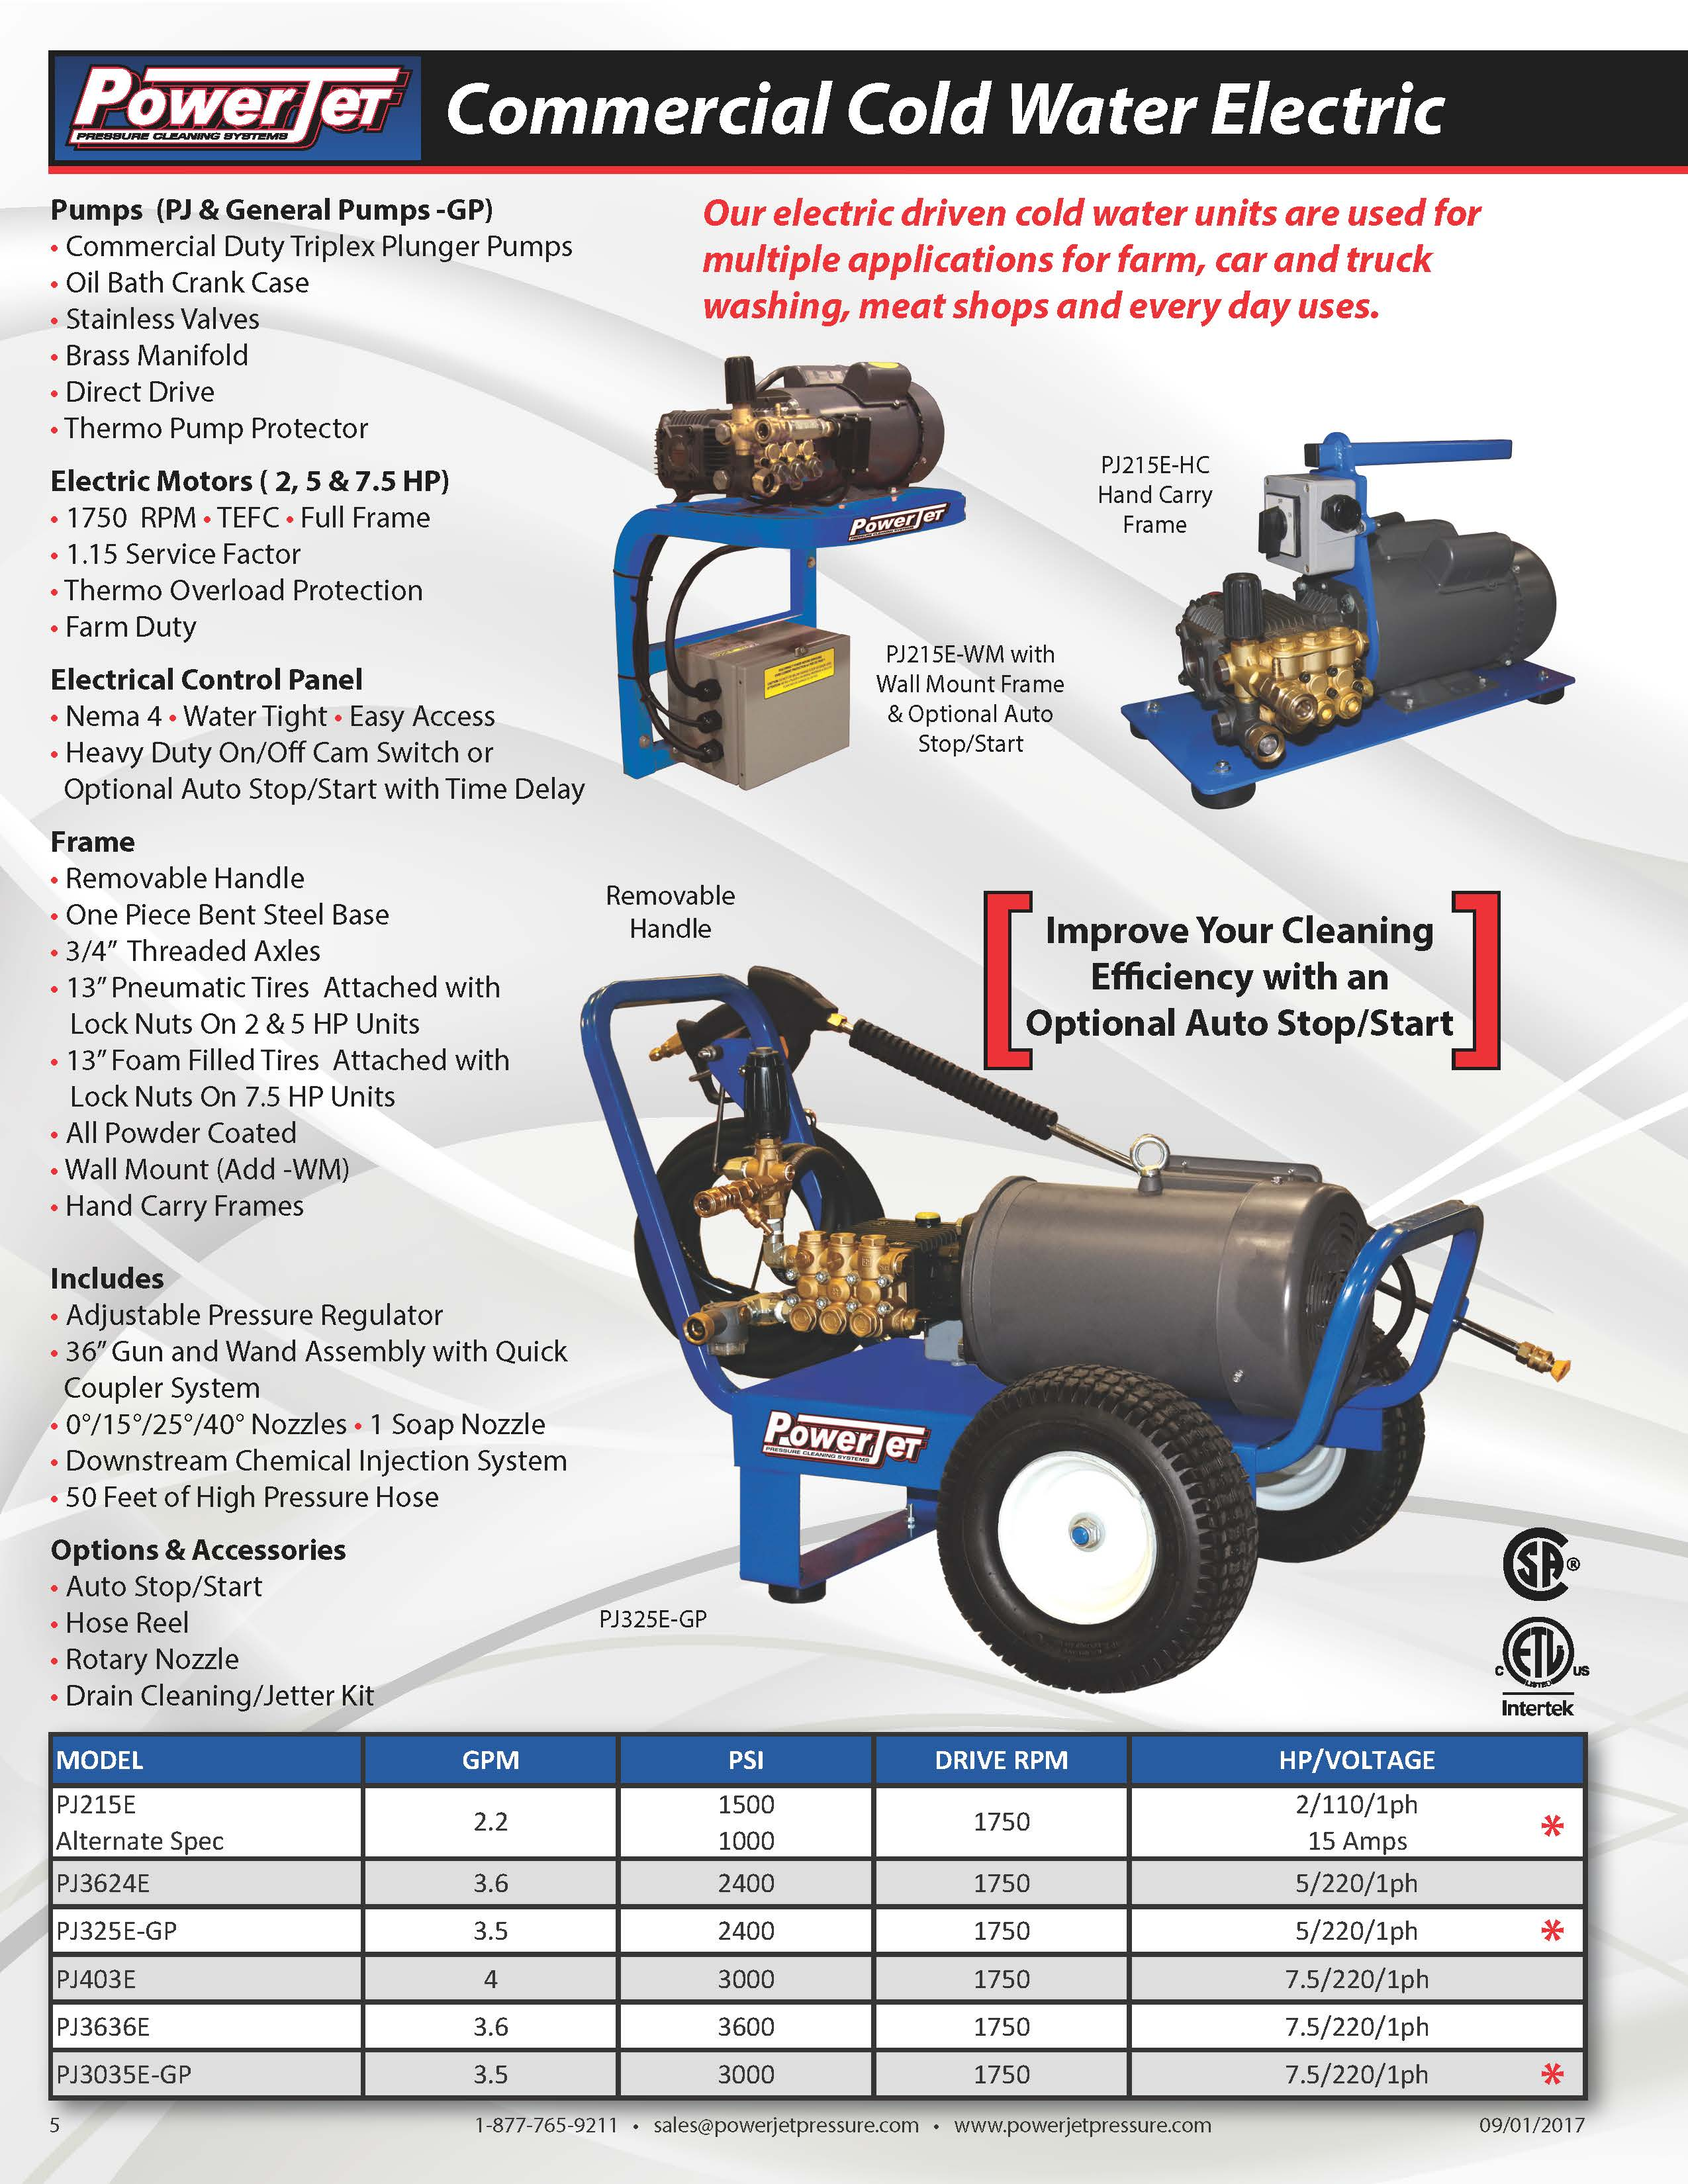 Powerjet Commercial Cold Water Electric Pressure Washer